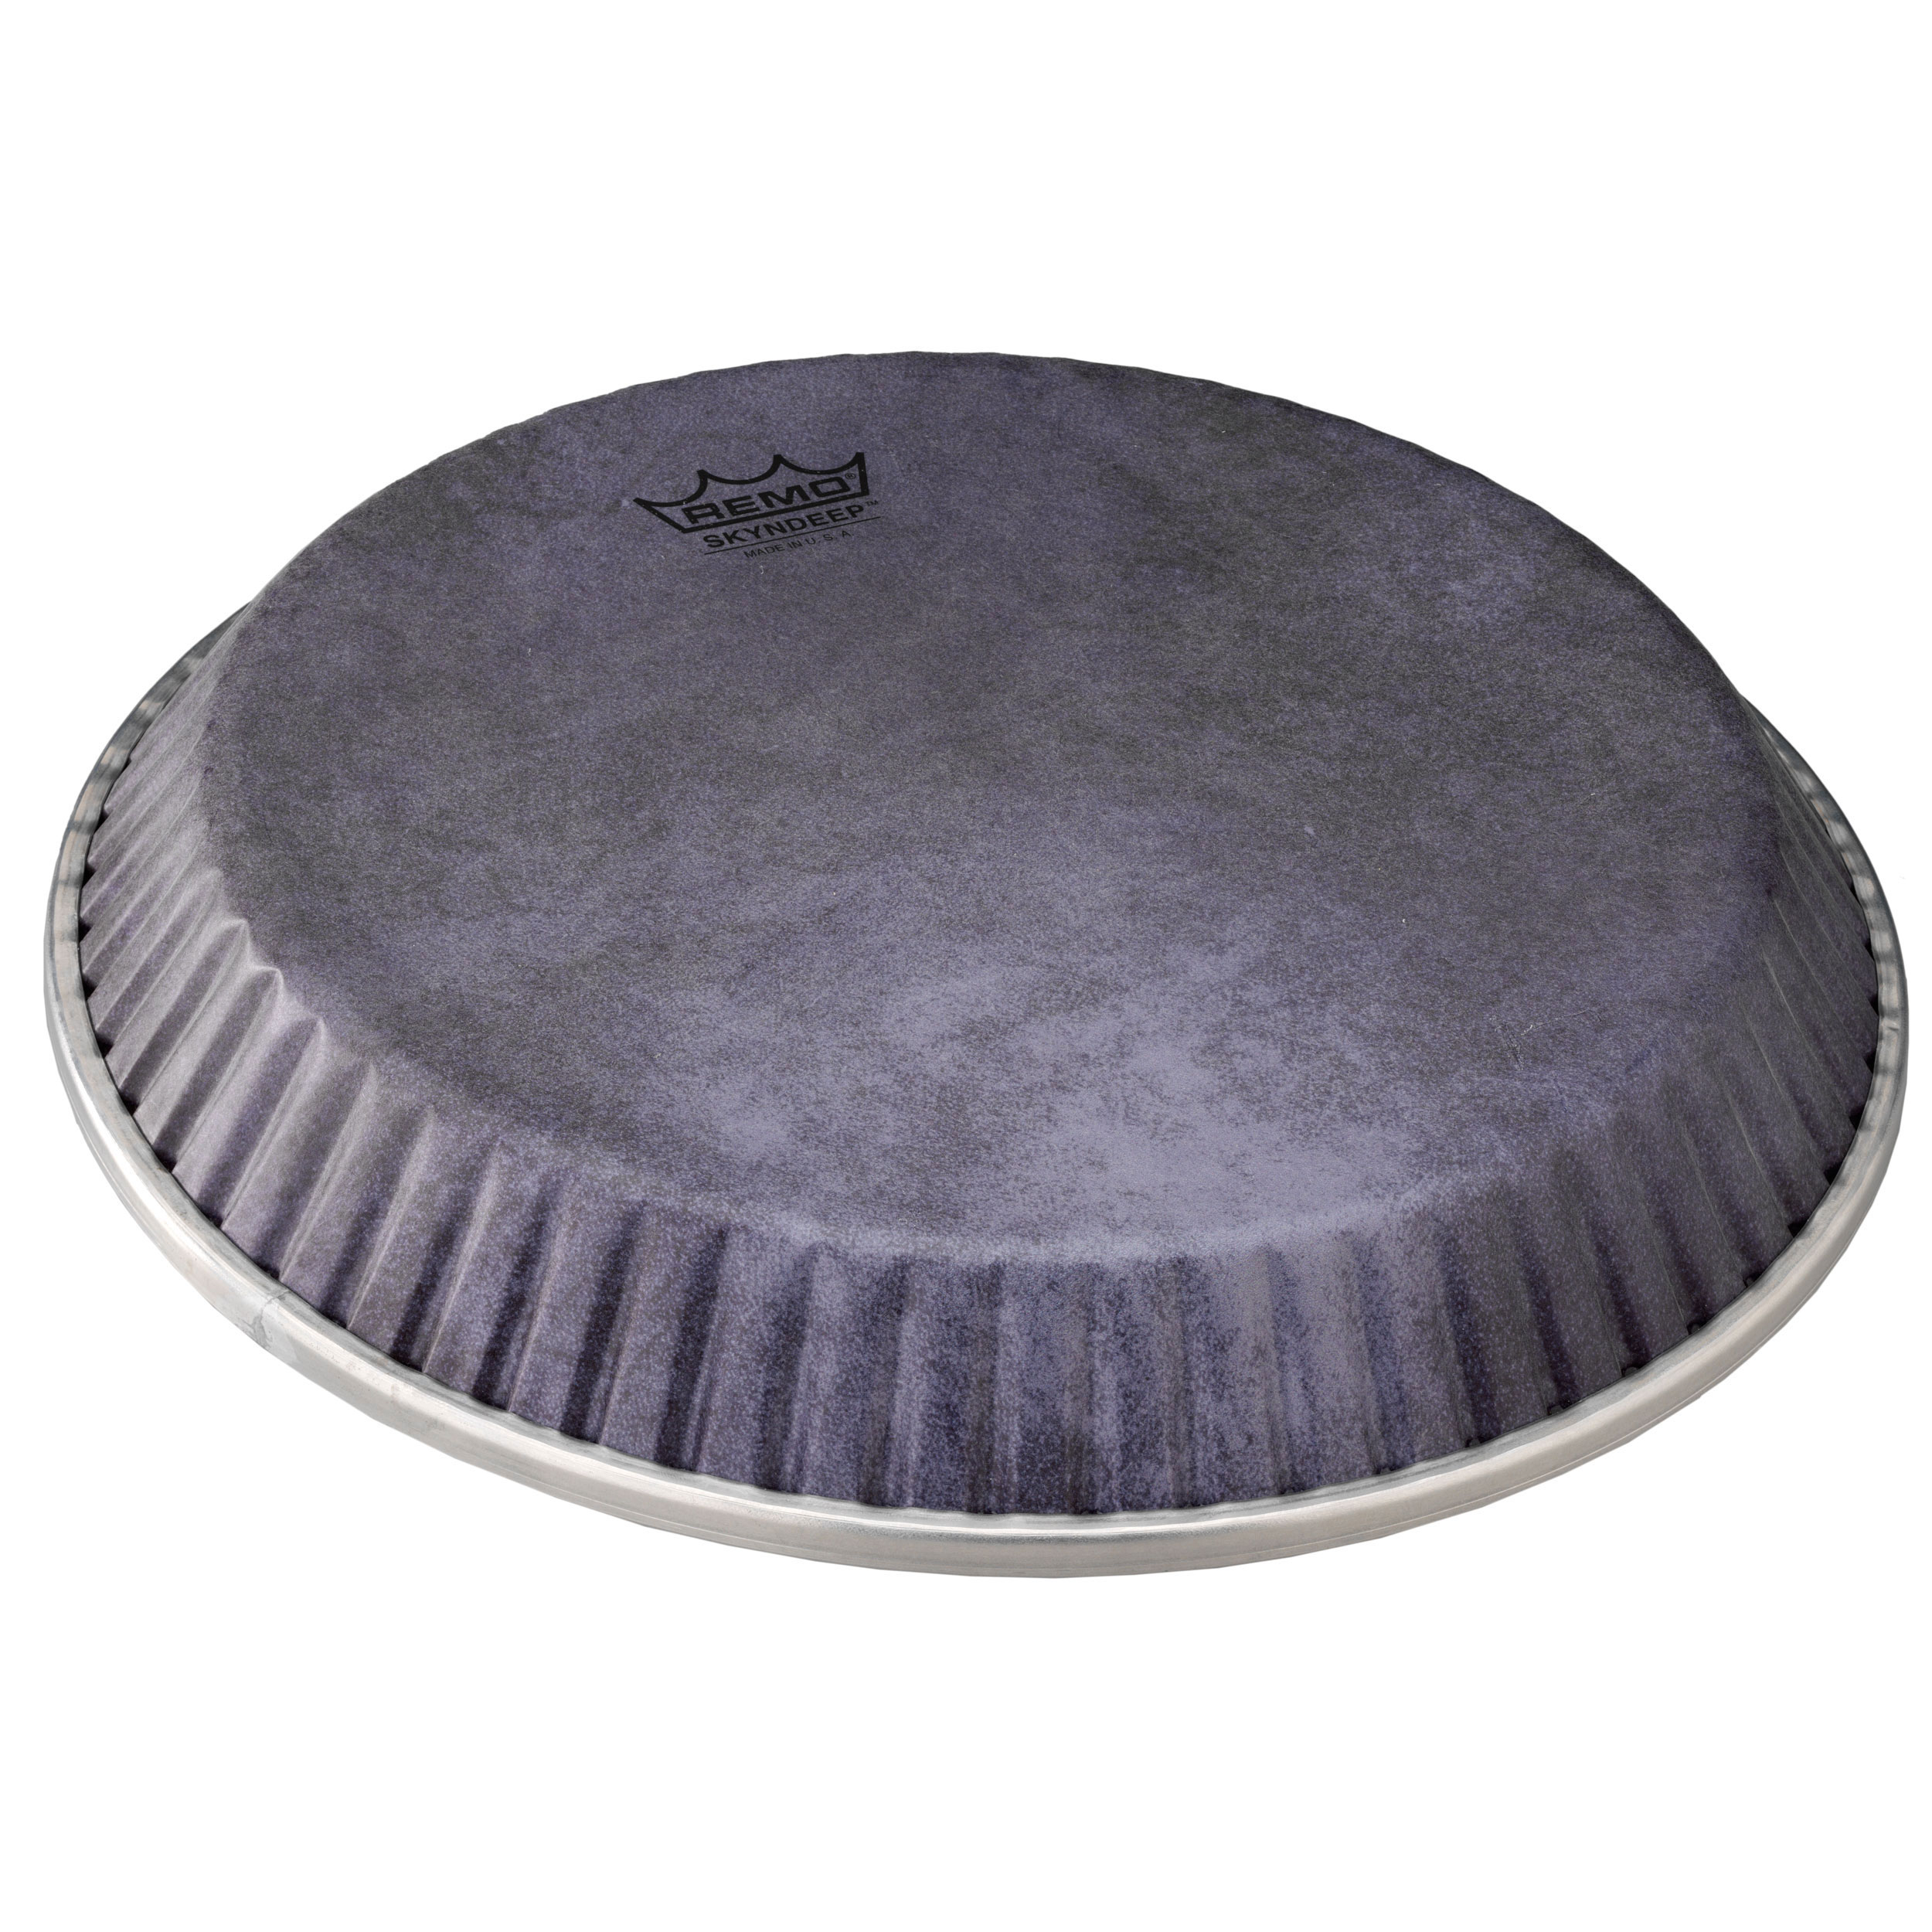 """Remo 11.75"""" Symmetry Skyndeep Conga Drum Head (D1 Collar) with Black Calfskin Graphic"""